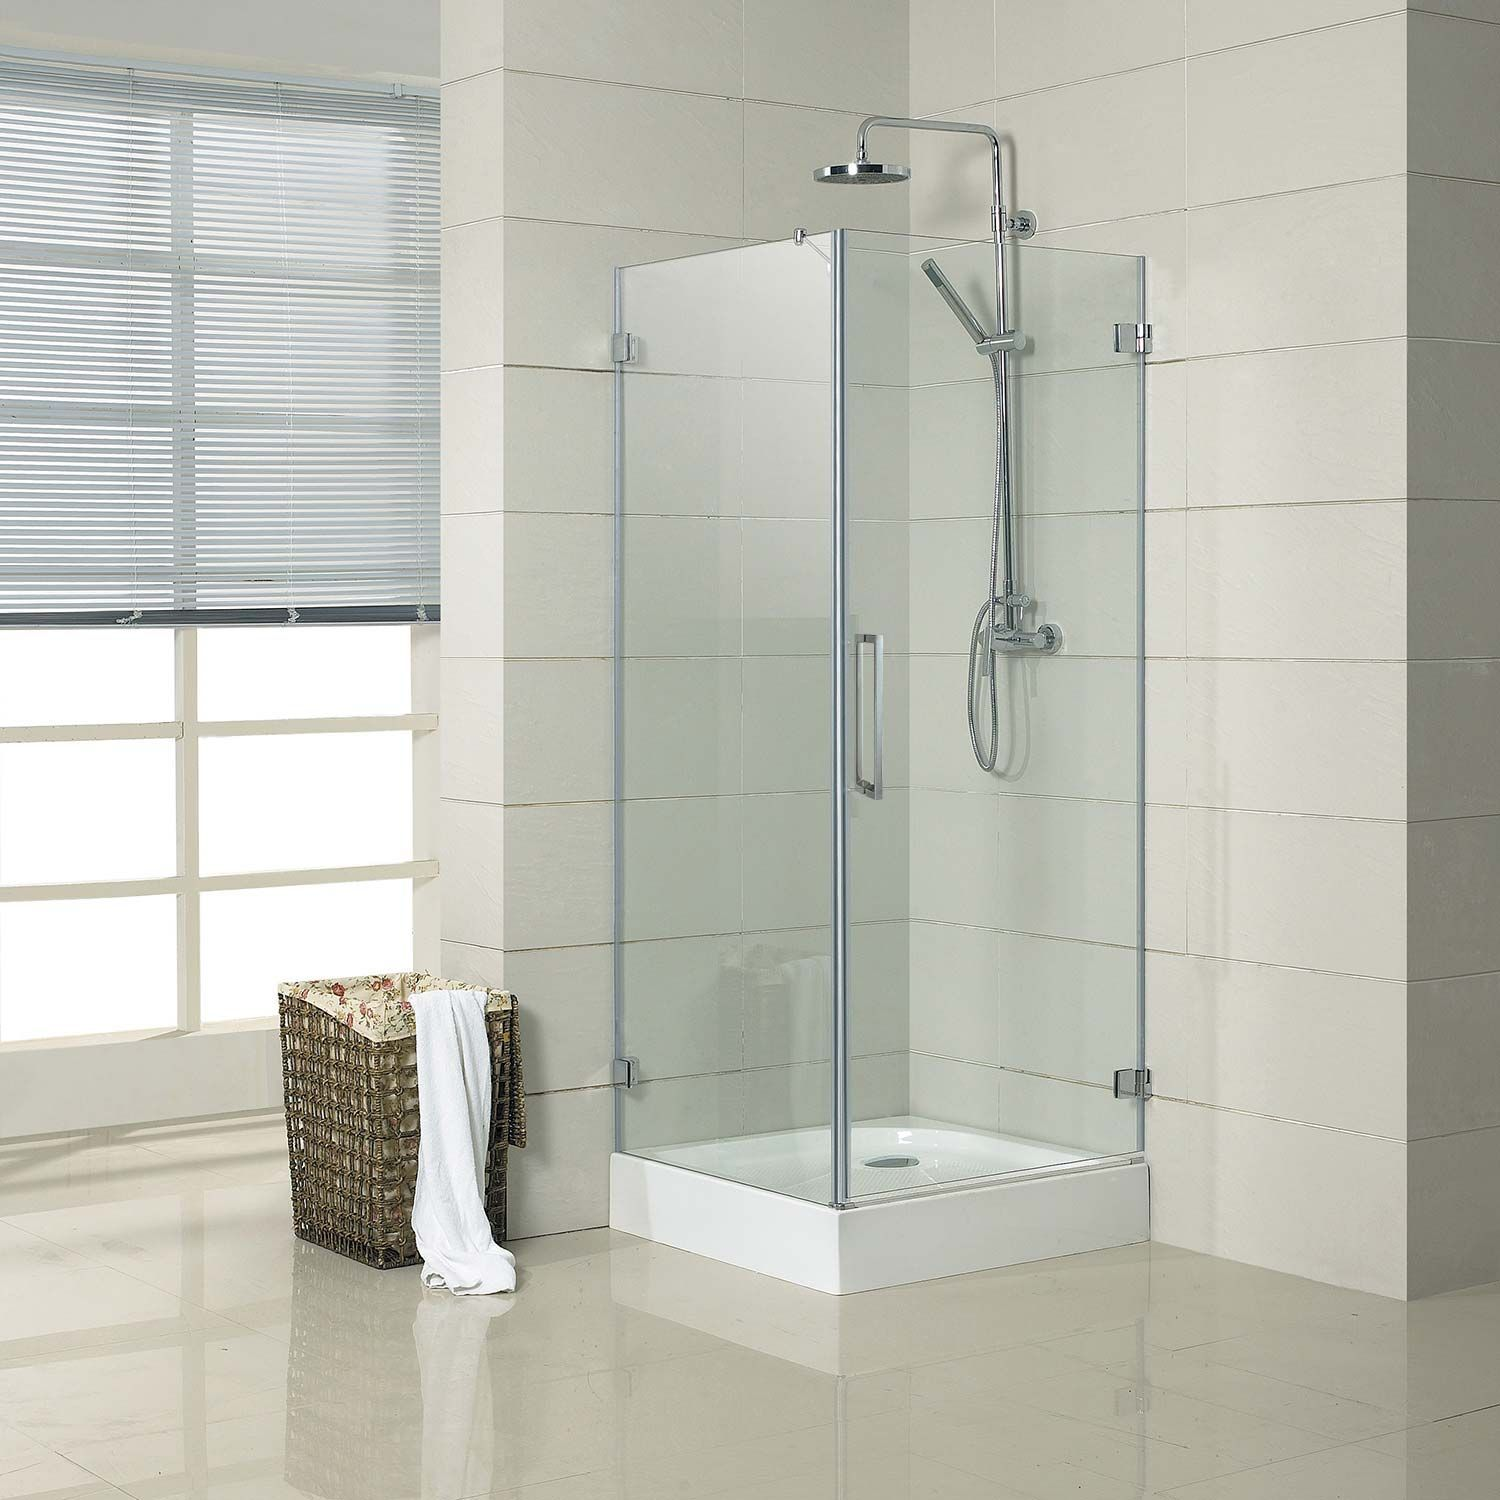 32 X 32 Jannu Square Shower Enclosure With Tray Right Hand Door Brushed Aluminum Shower Enclosure Corner Shower Small Shower Room